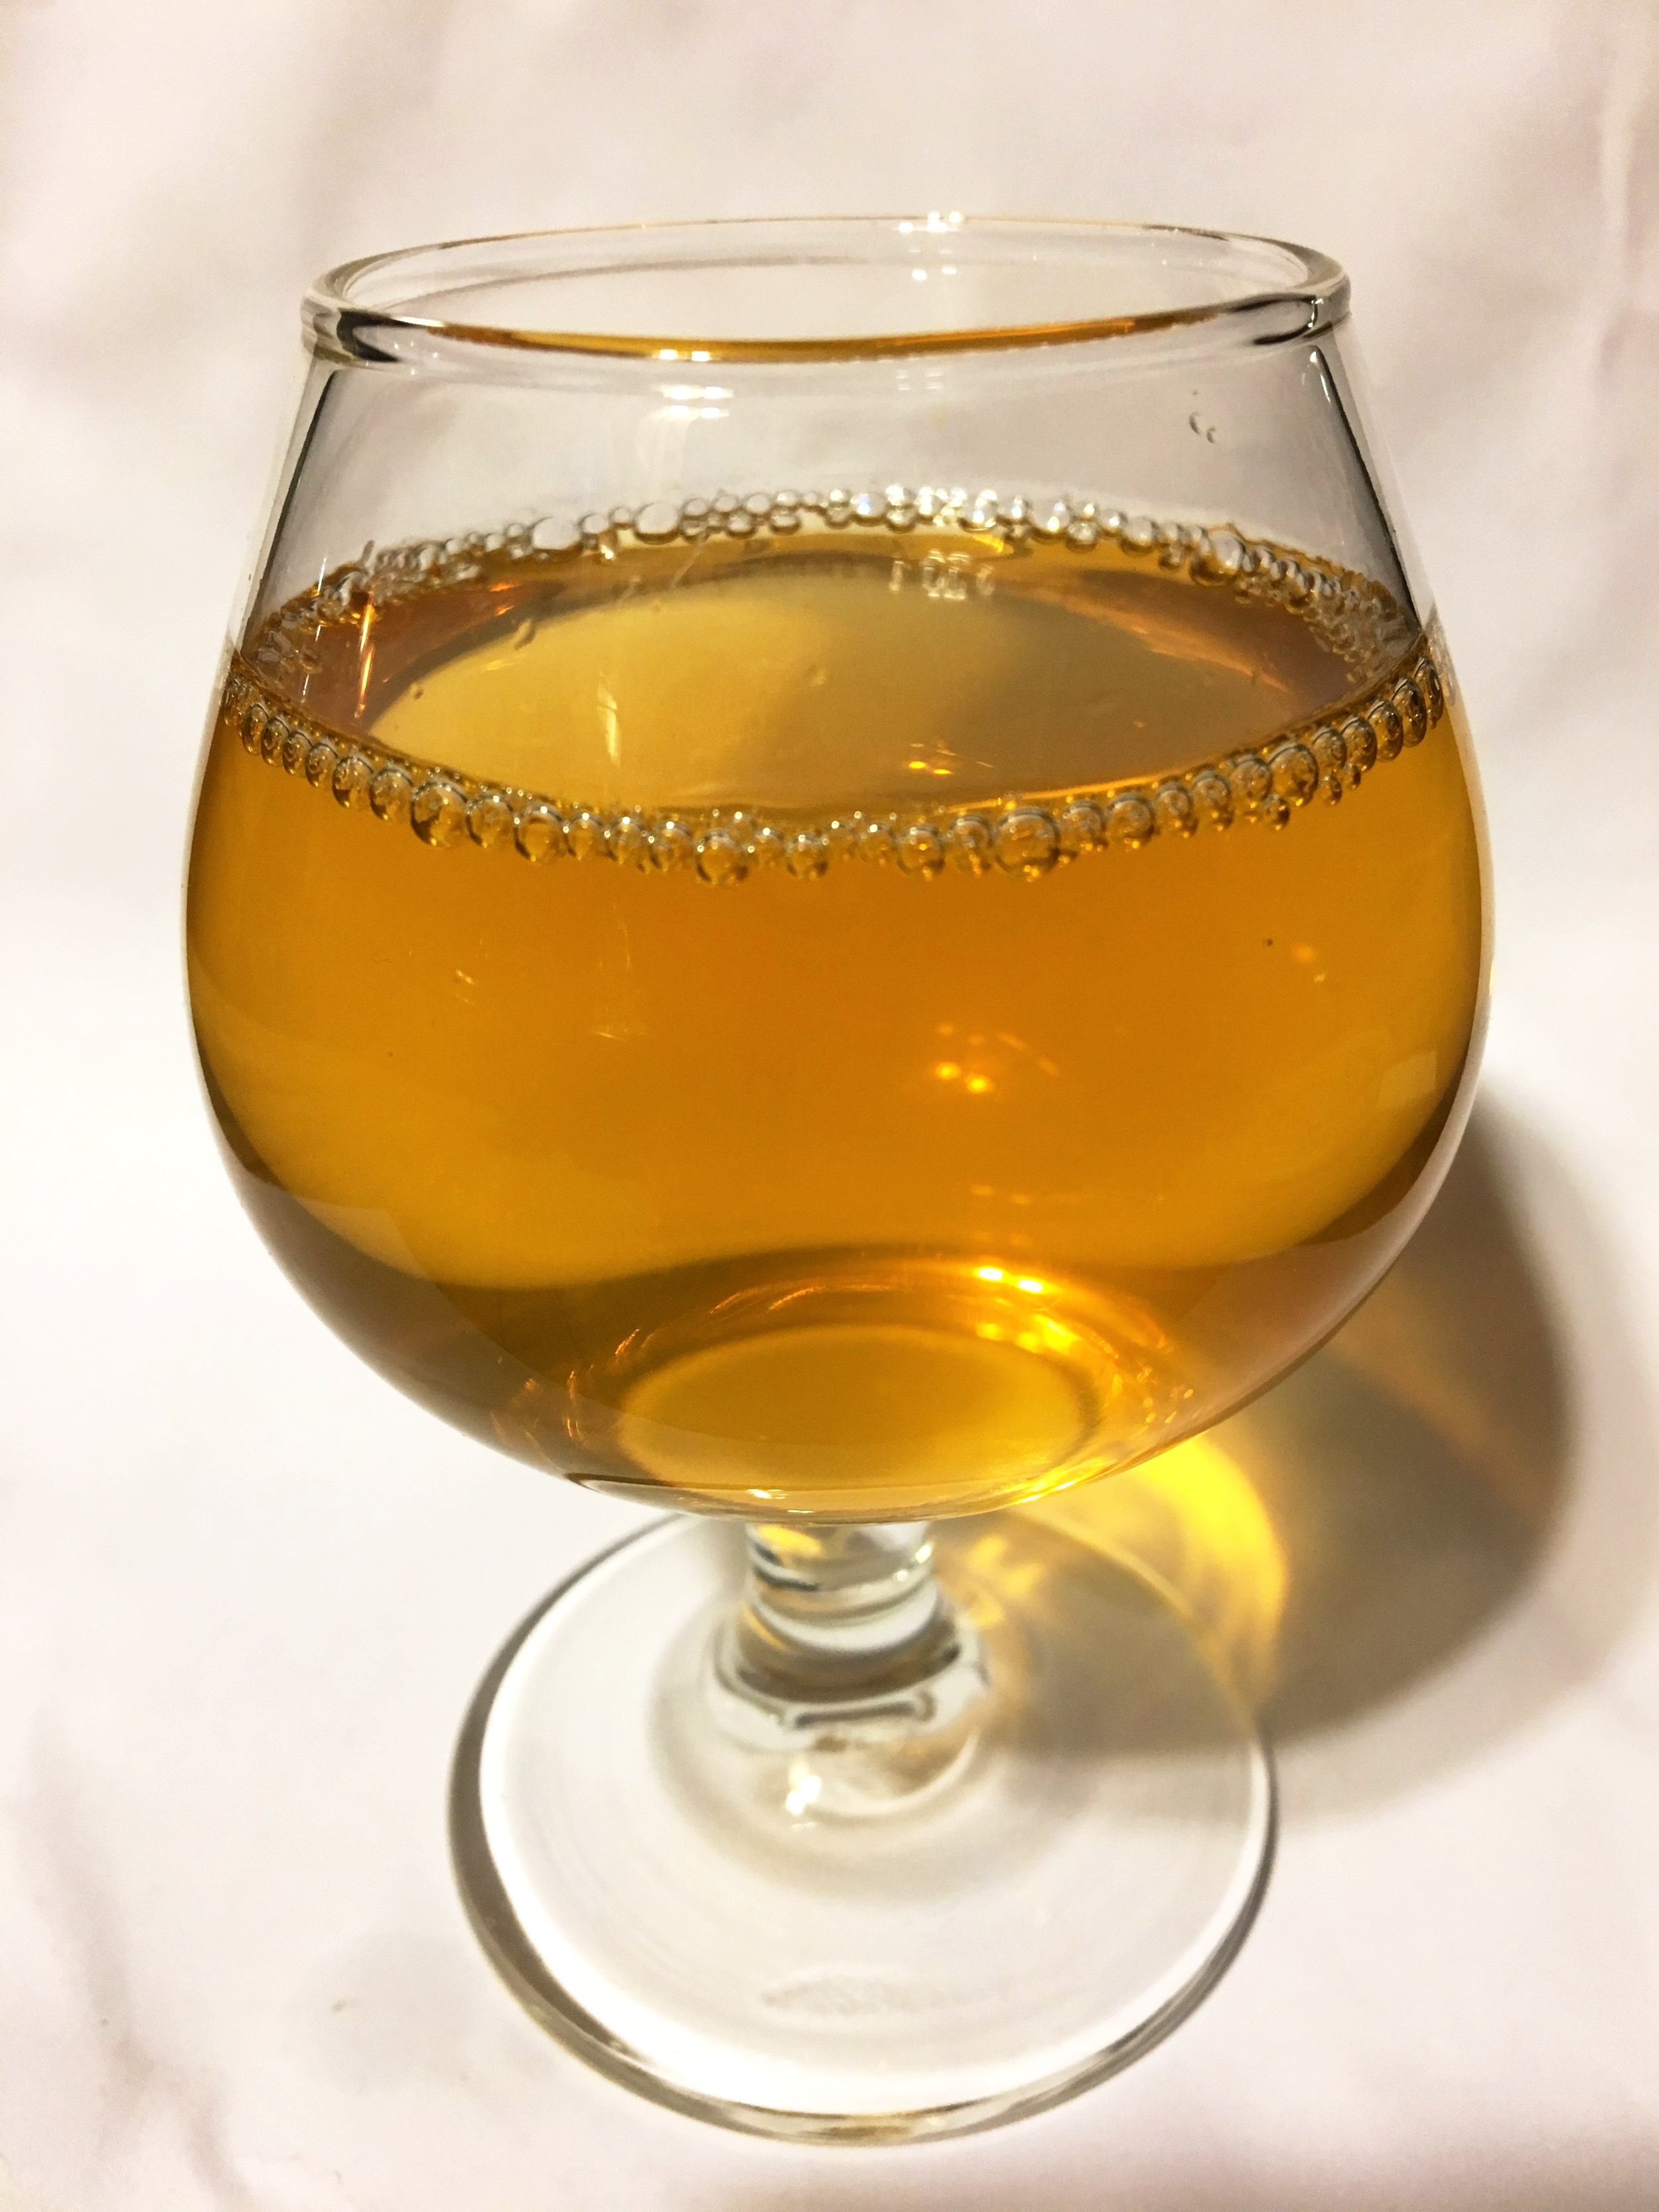 Perry Russet Cider